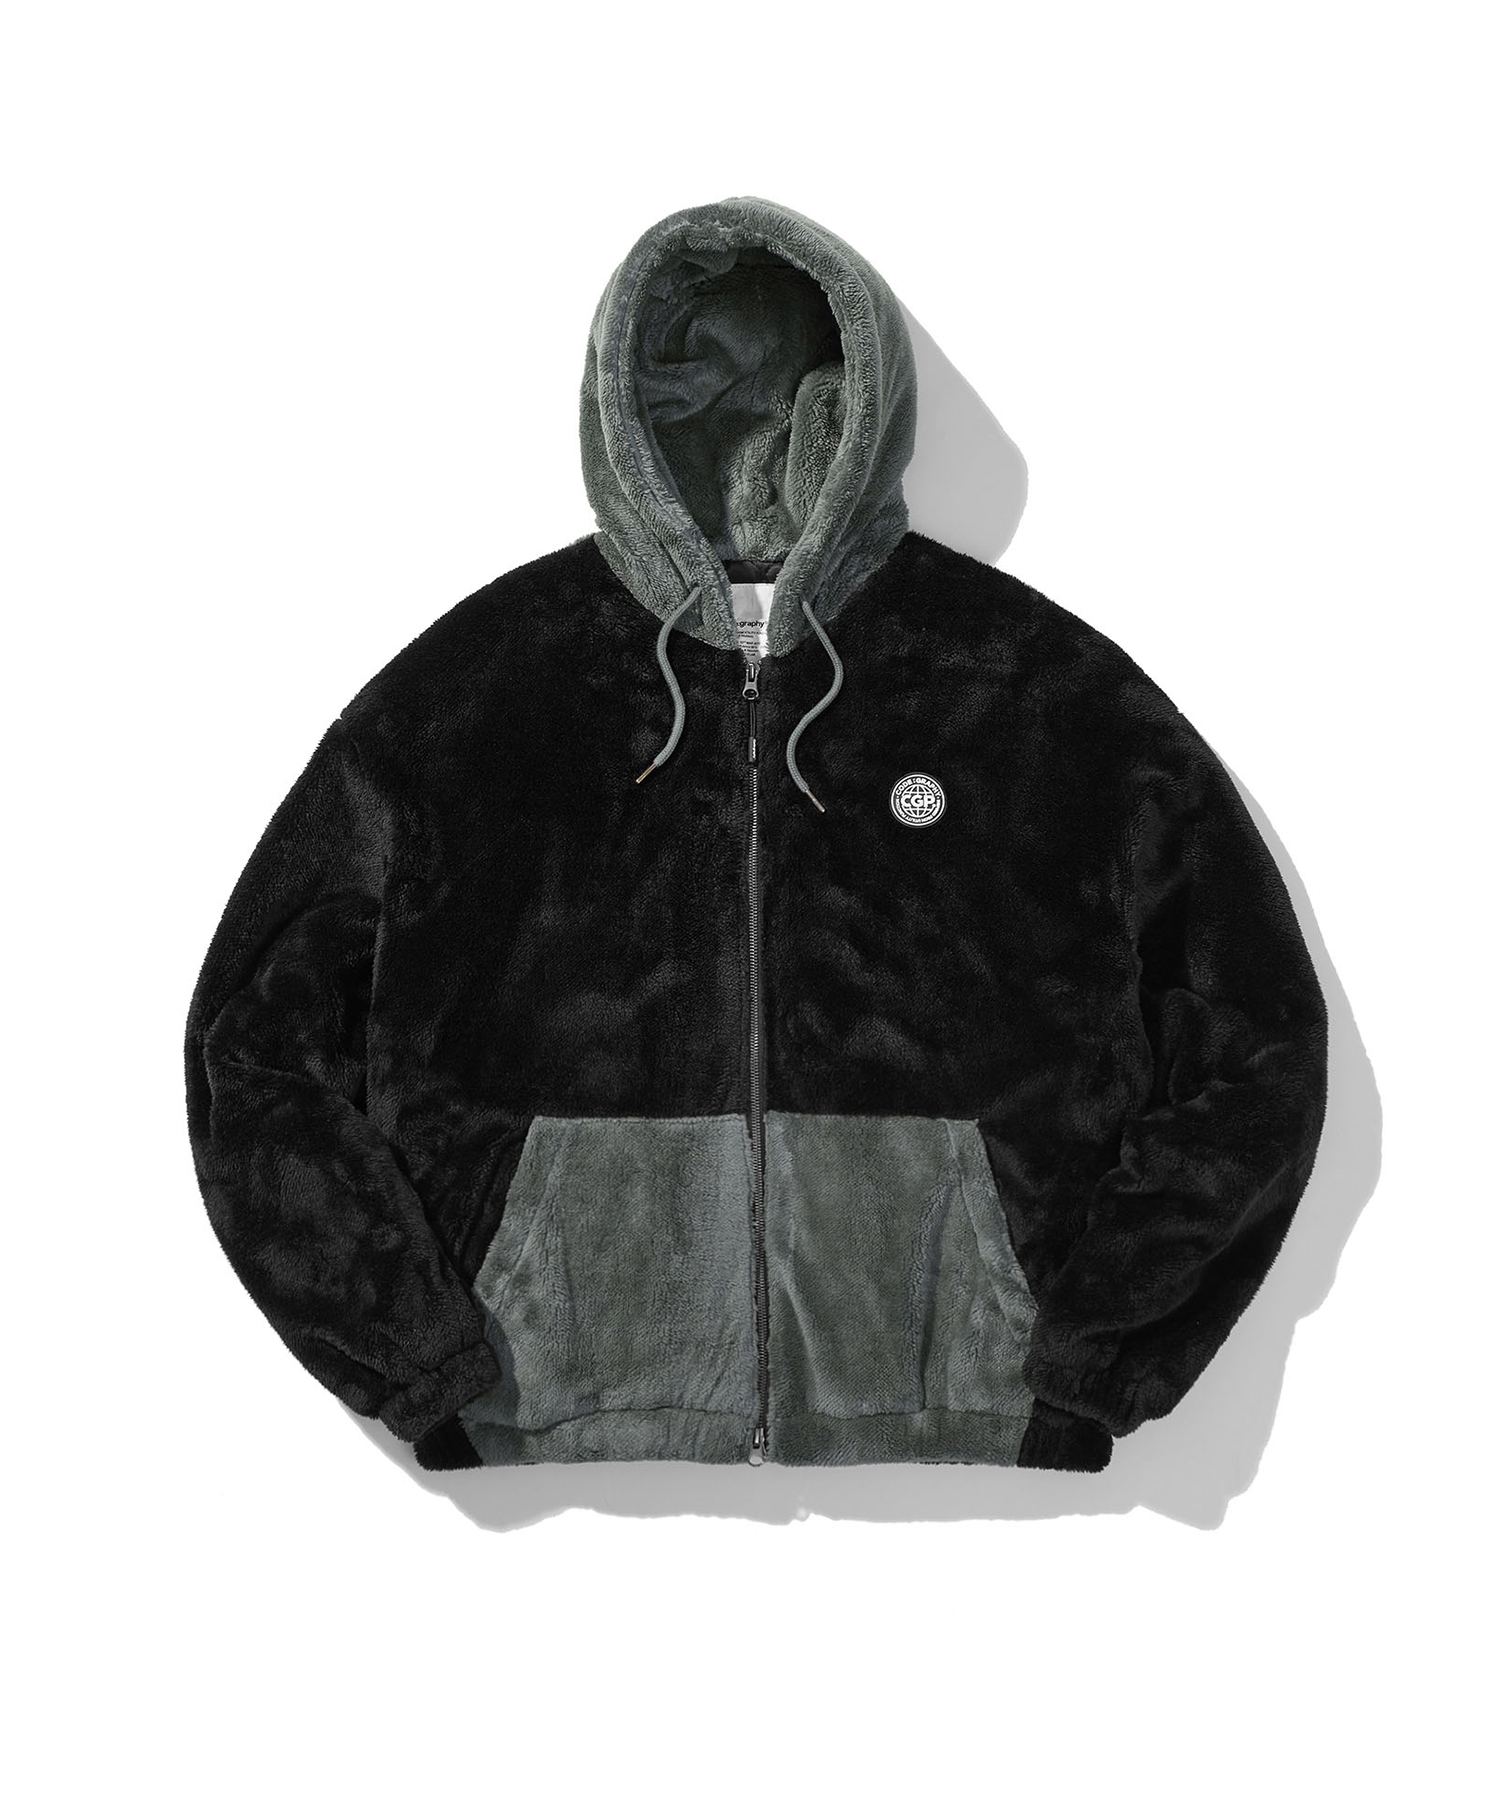 HEAVY BOA FLEECE HOOD JACKET - BK